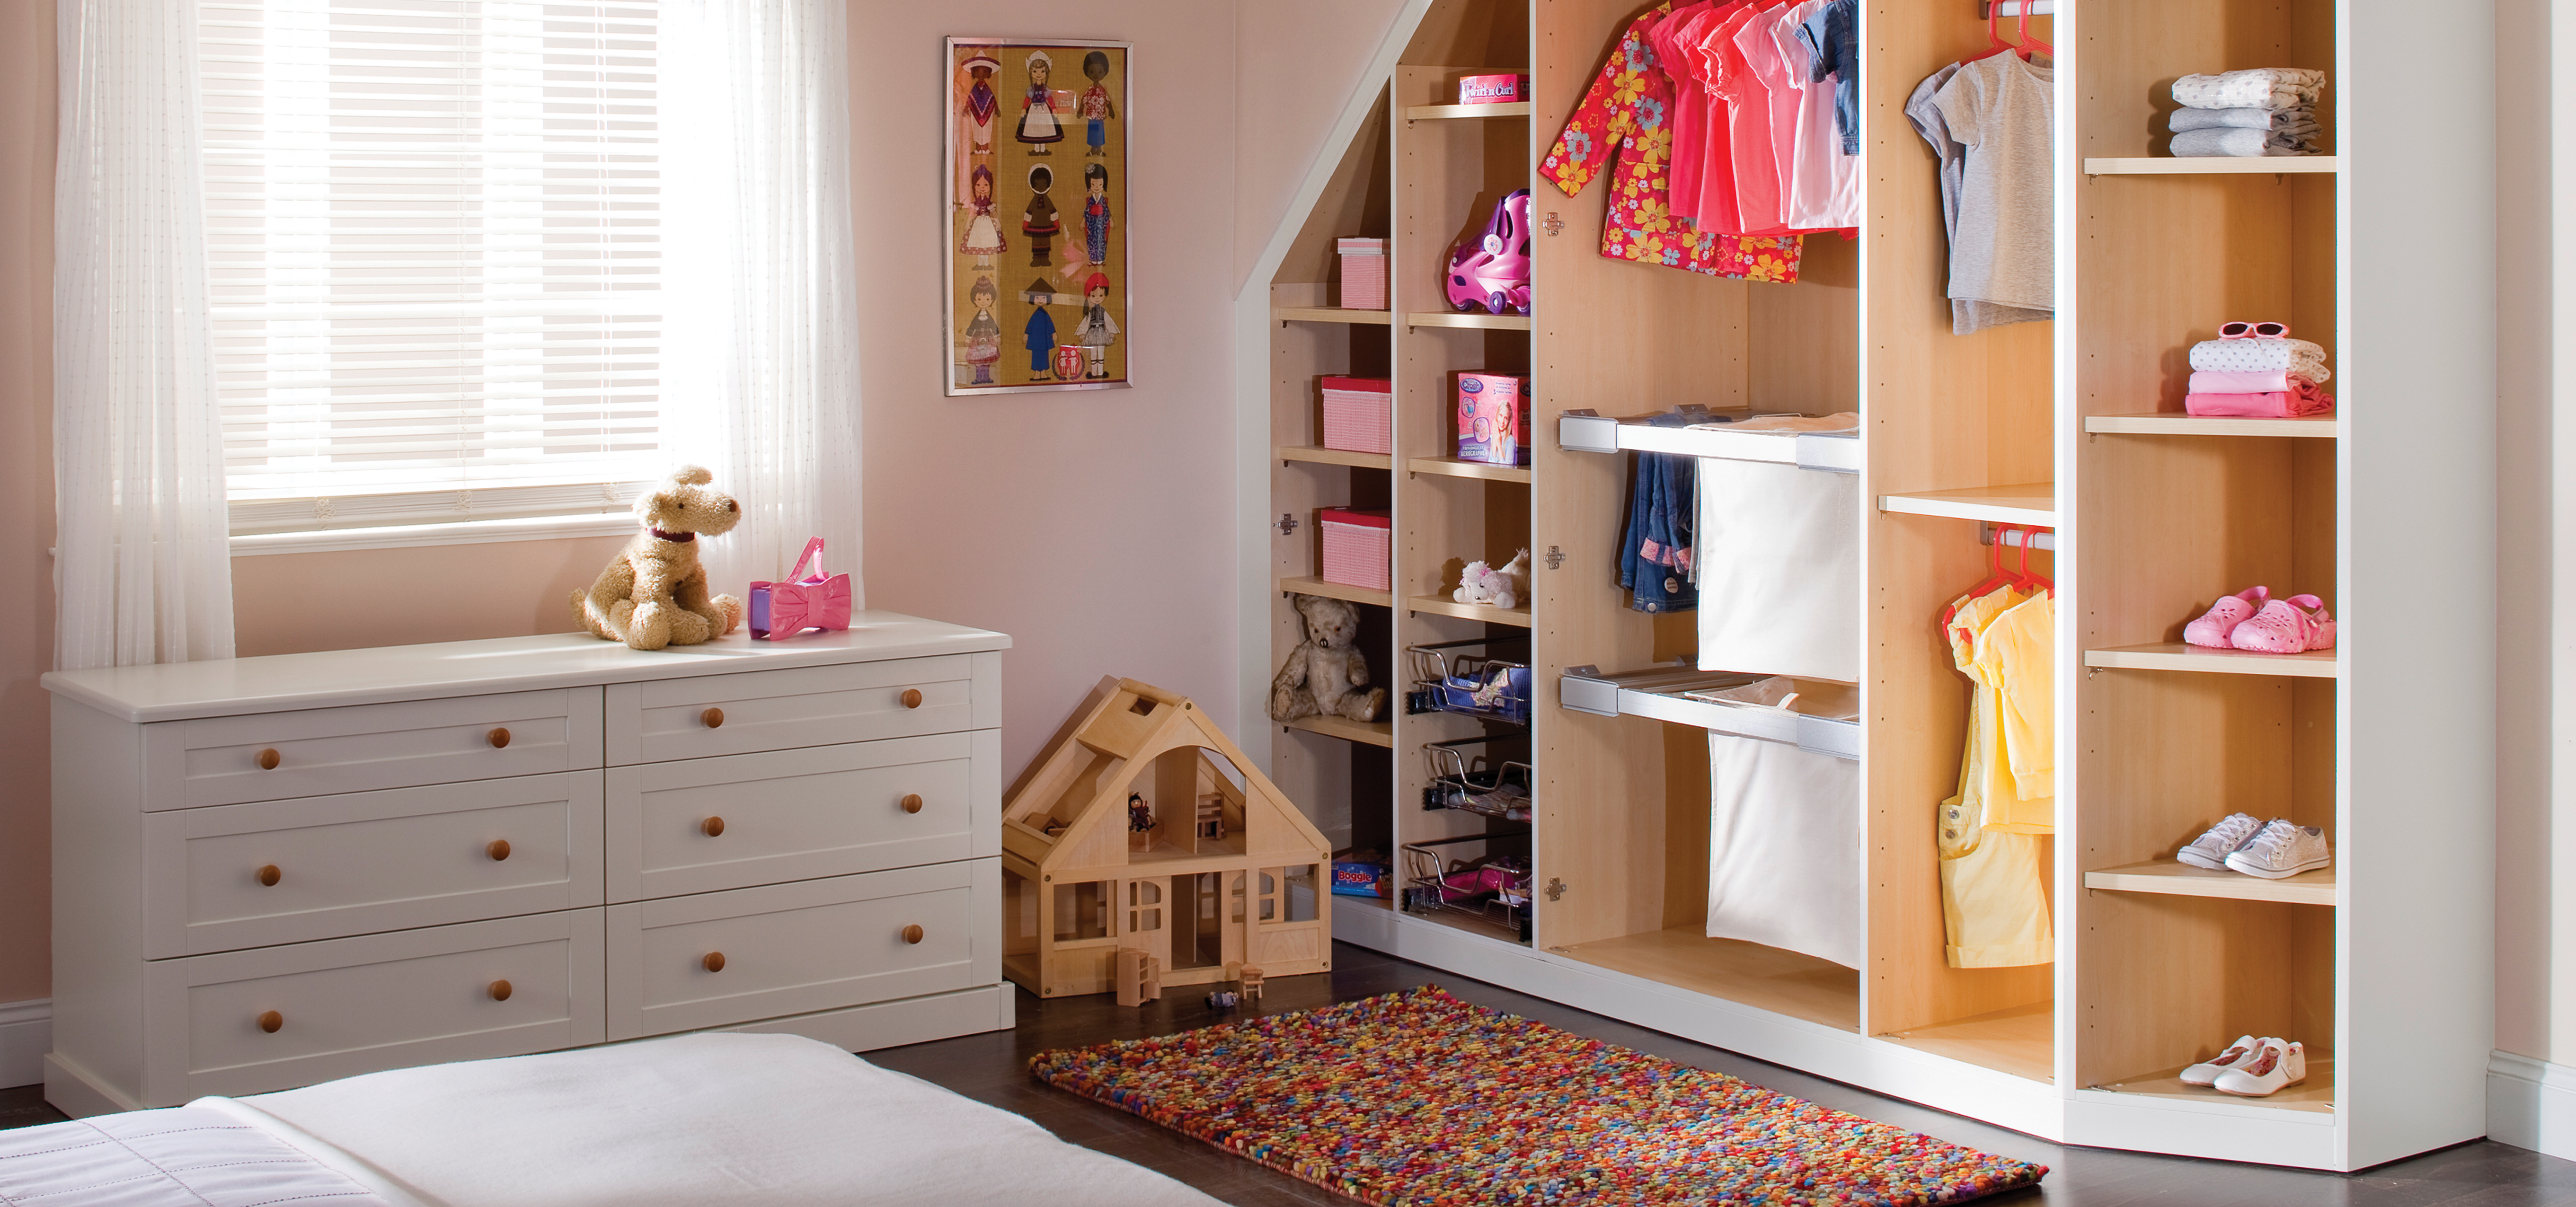 Interior Layout perfect for children